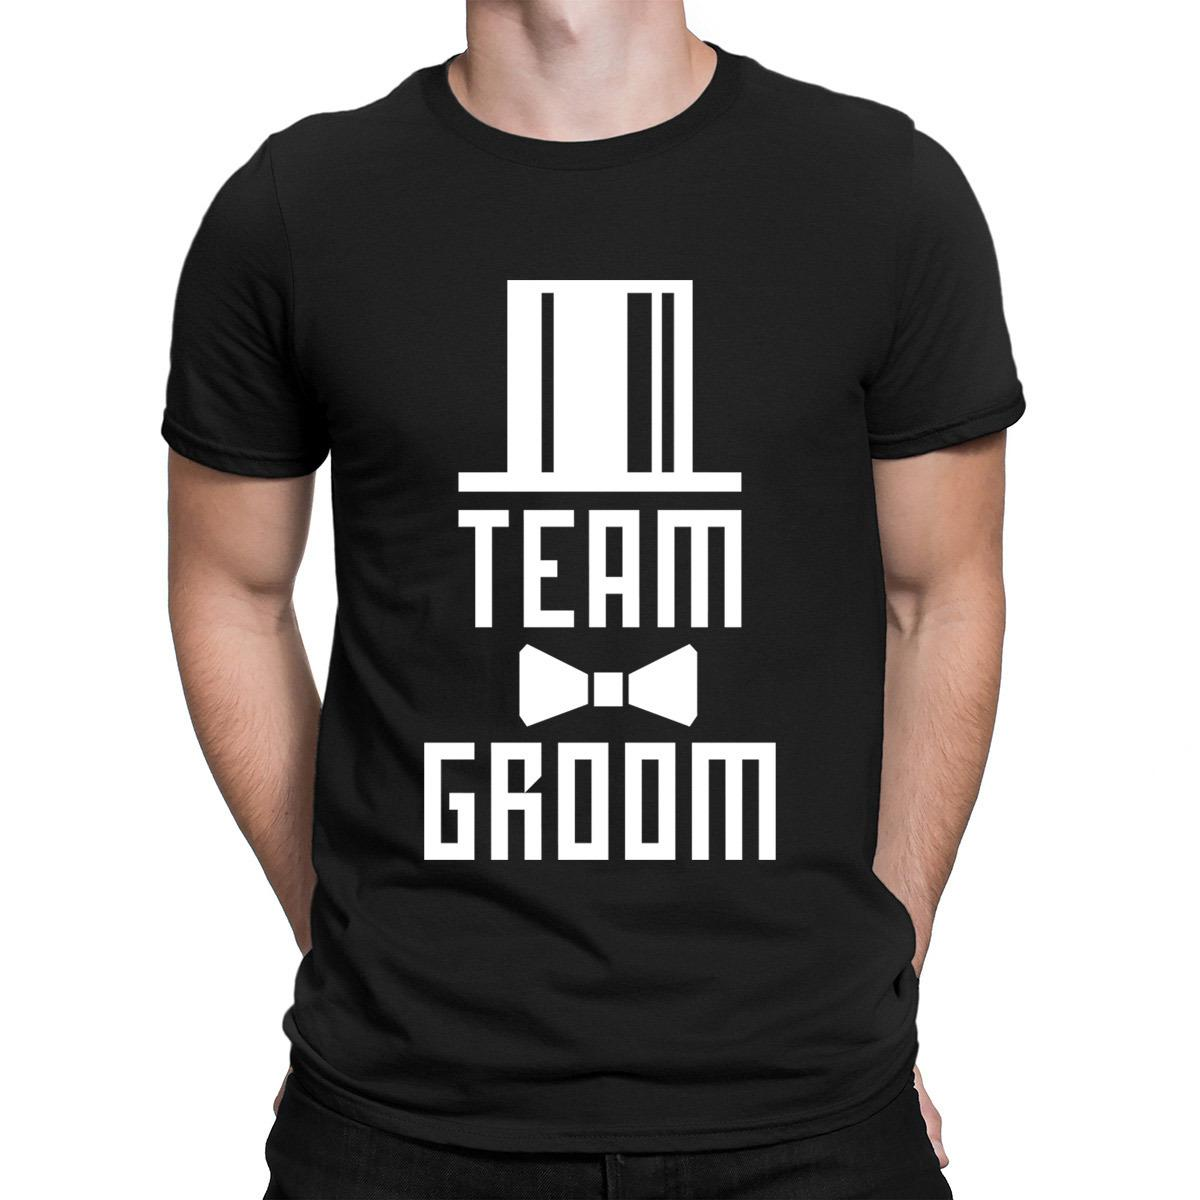 6445c877f0172 14 Team Groom Bachelor Party Jga Cylinder Hut Bff Tshirt Graphic Spring  Autumn T Shirt For Men Customized Websites Pop Top Tee